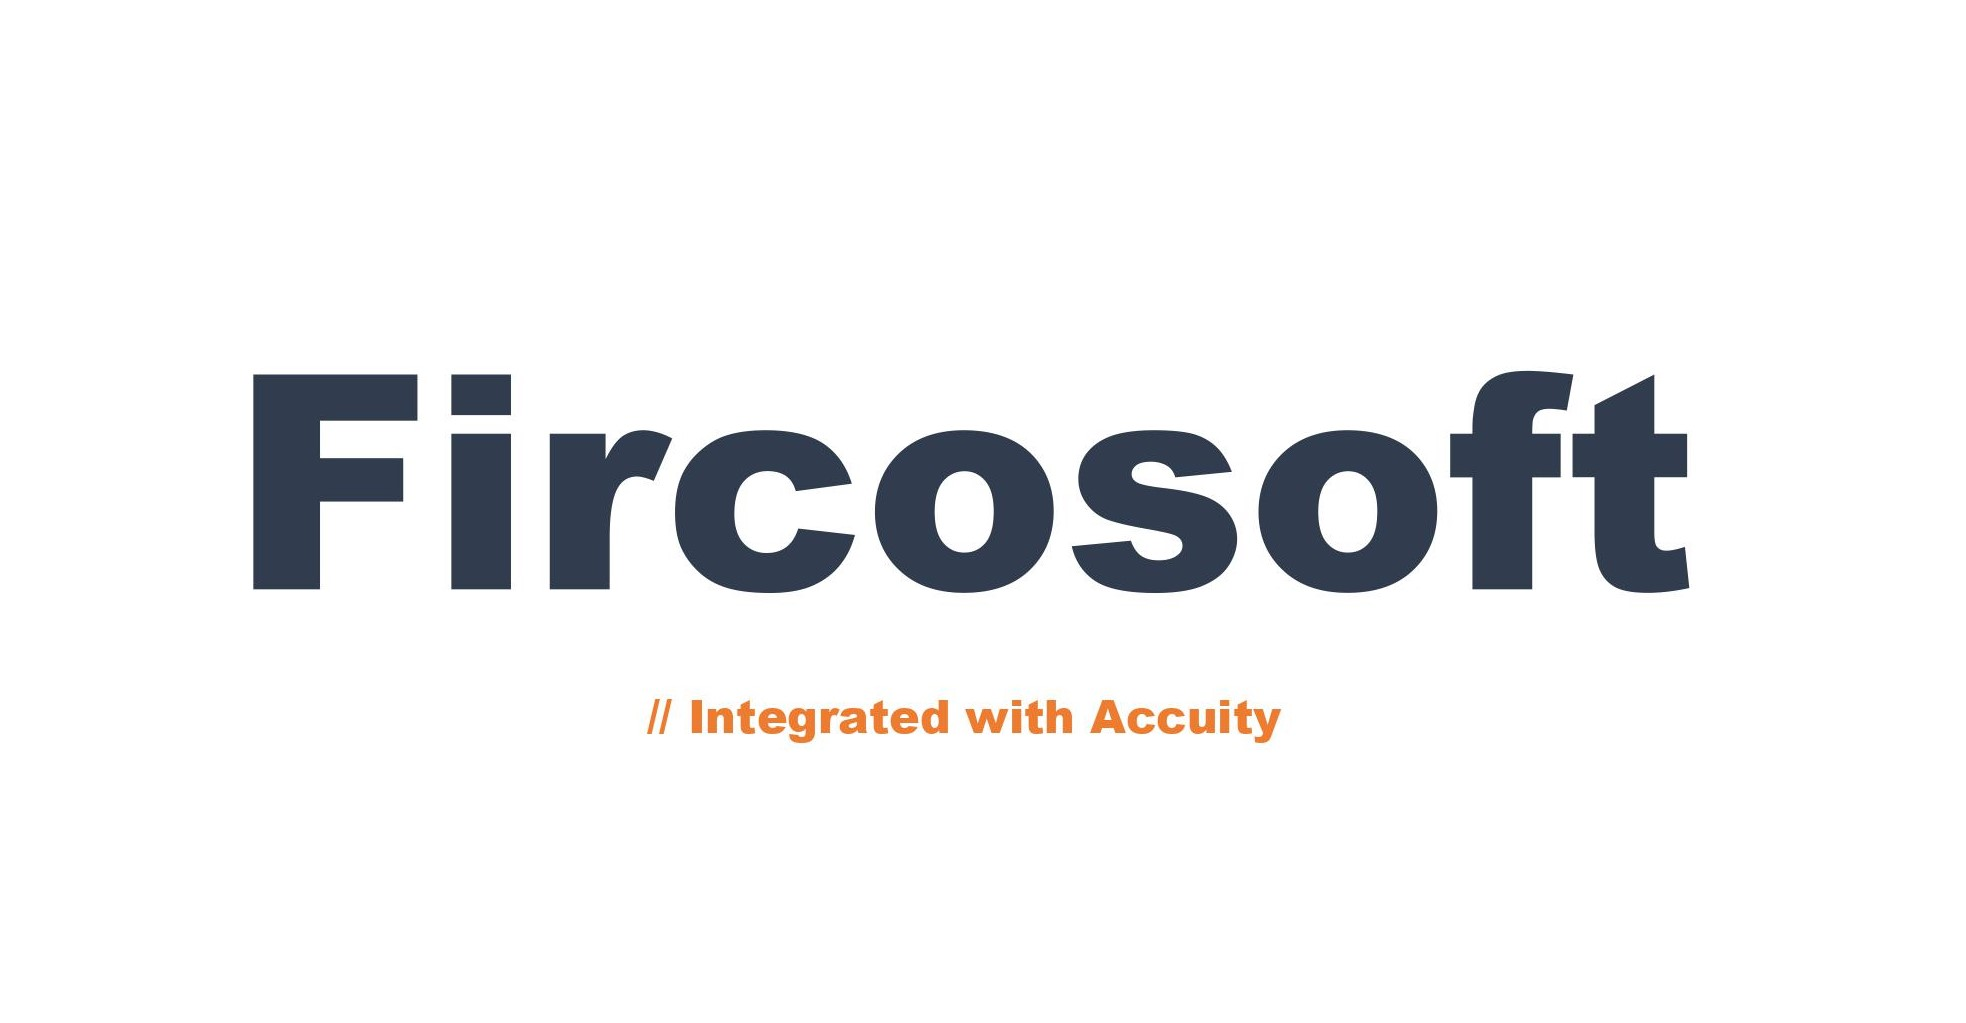 logo de Fircosoft - integrated with Accuity